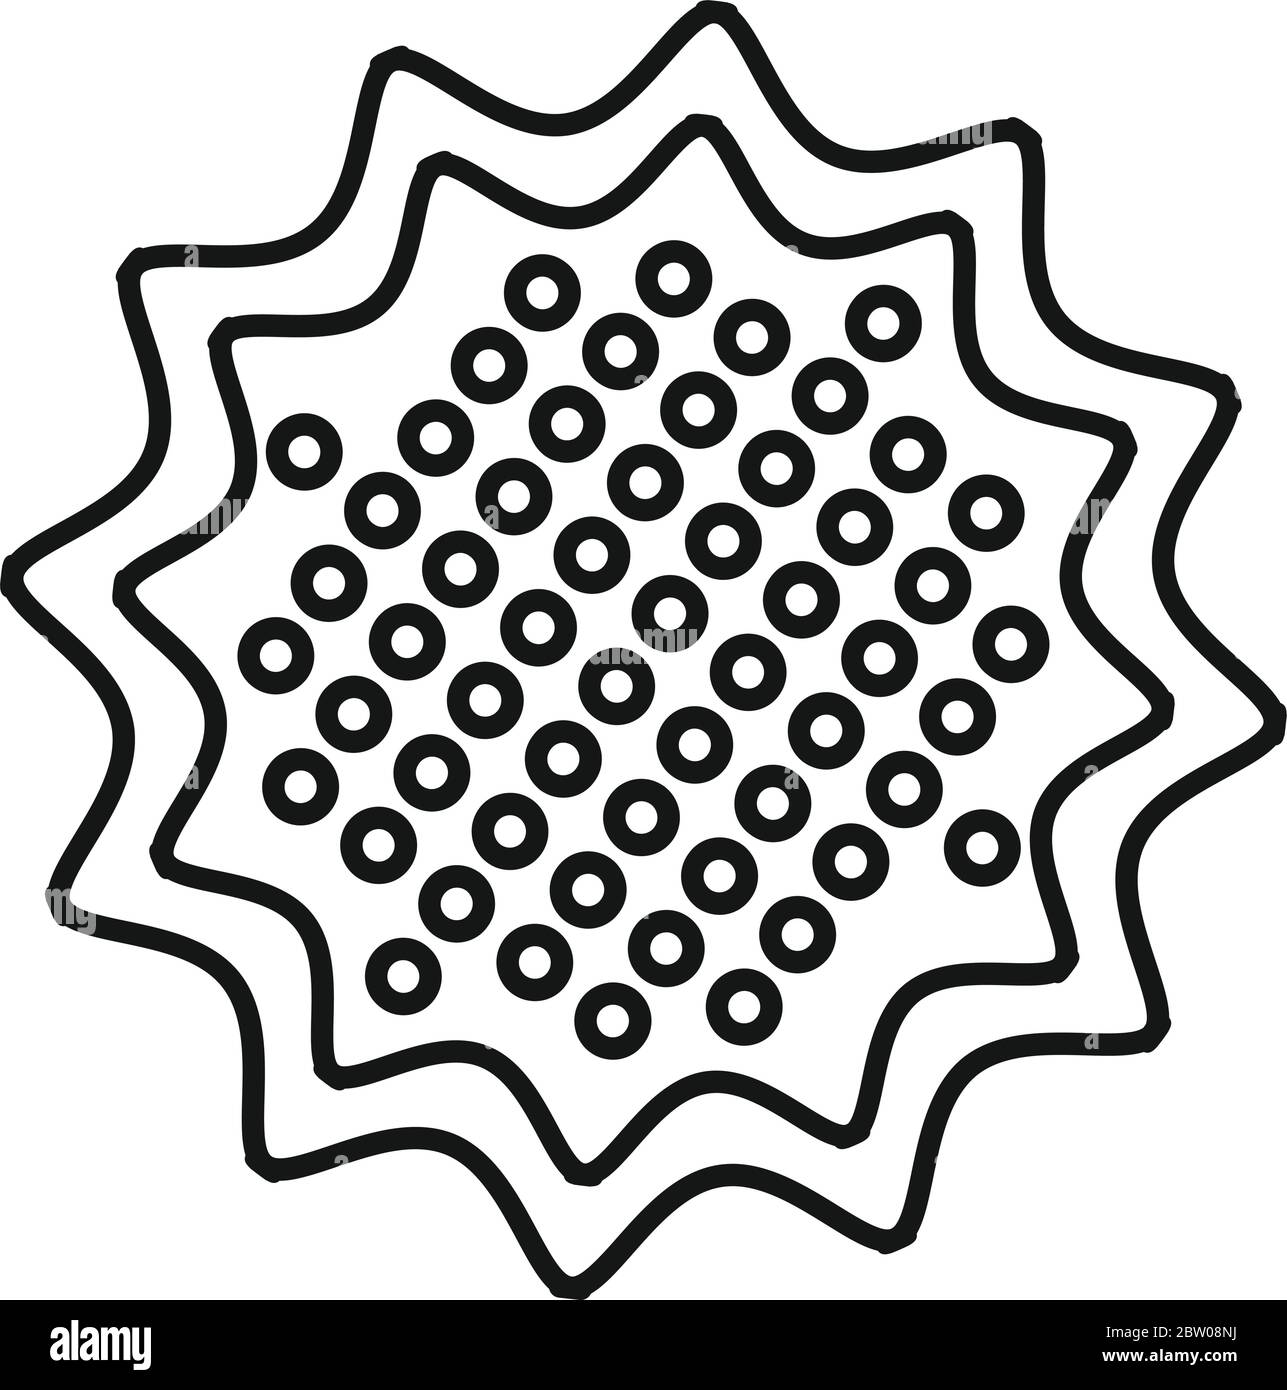 star biscuit icon outline star biscuit vector icon for web design isolated on white background stock vector image art alamy alamy